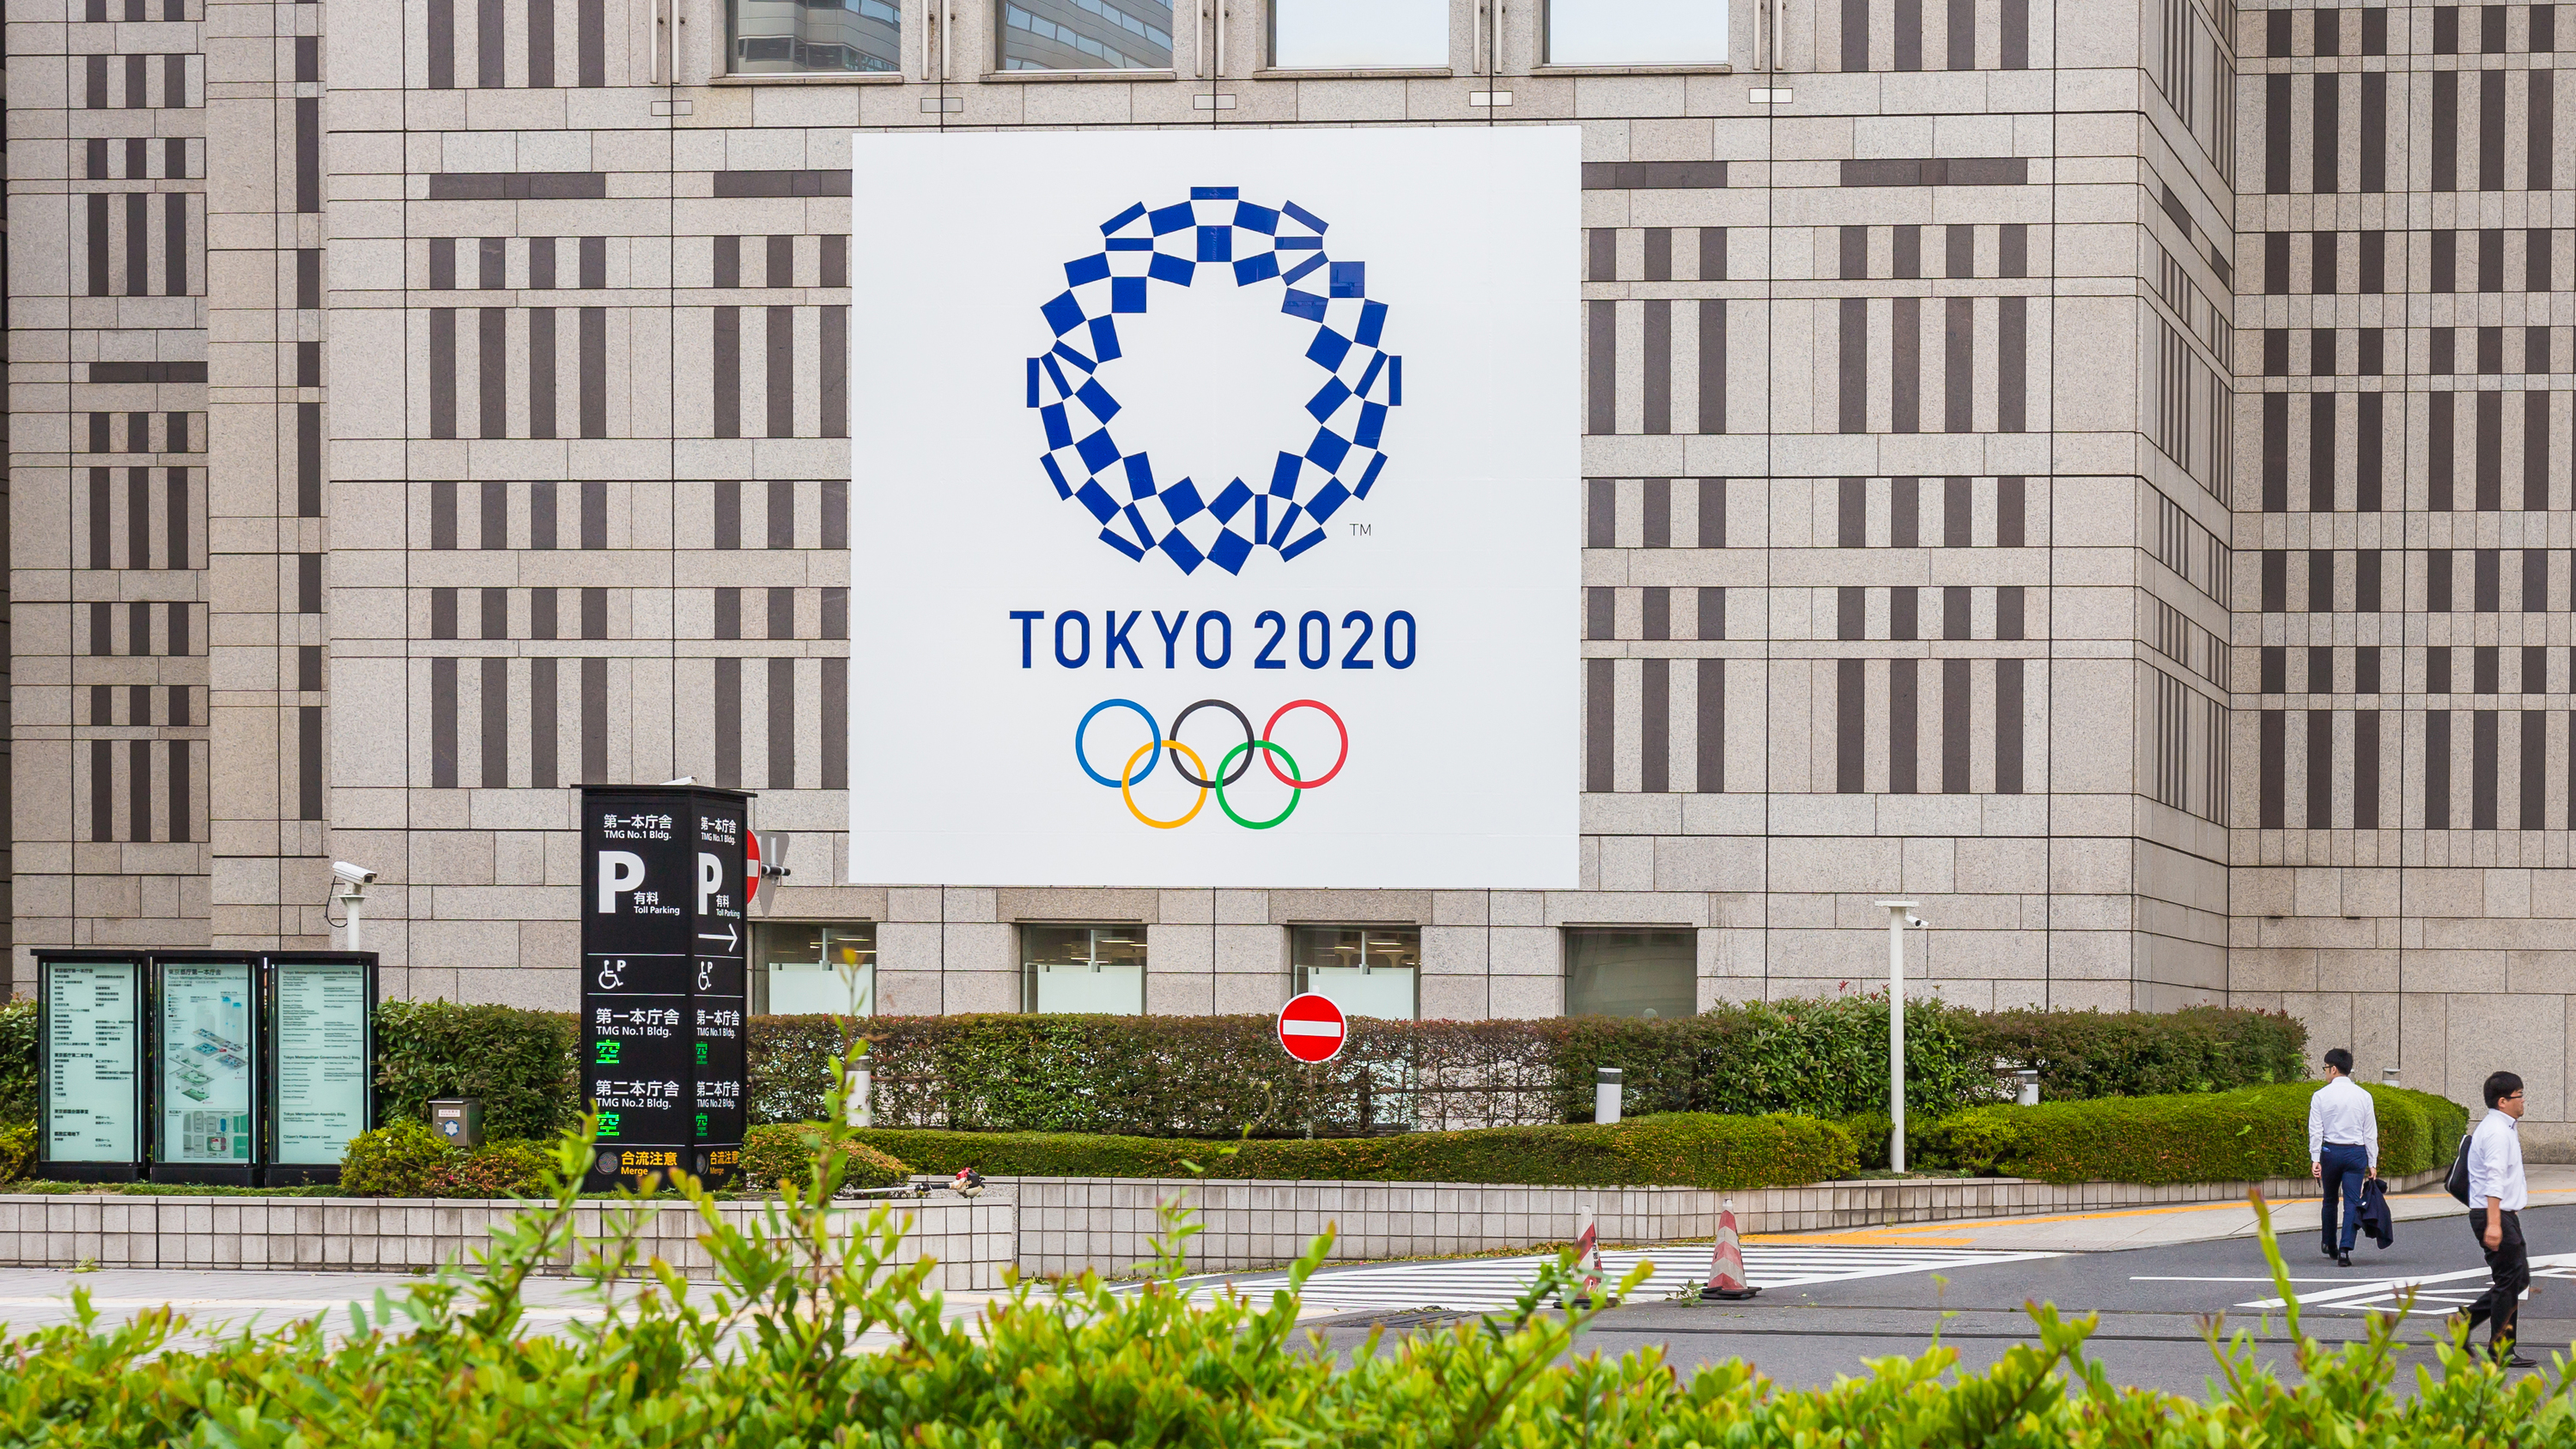 The 2020 Tokyo Olympics have been postponed